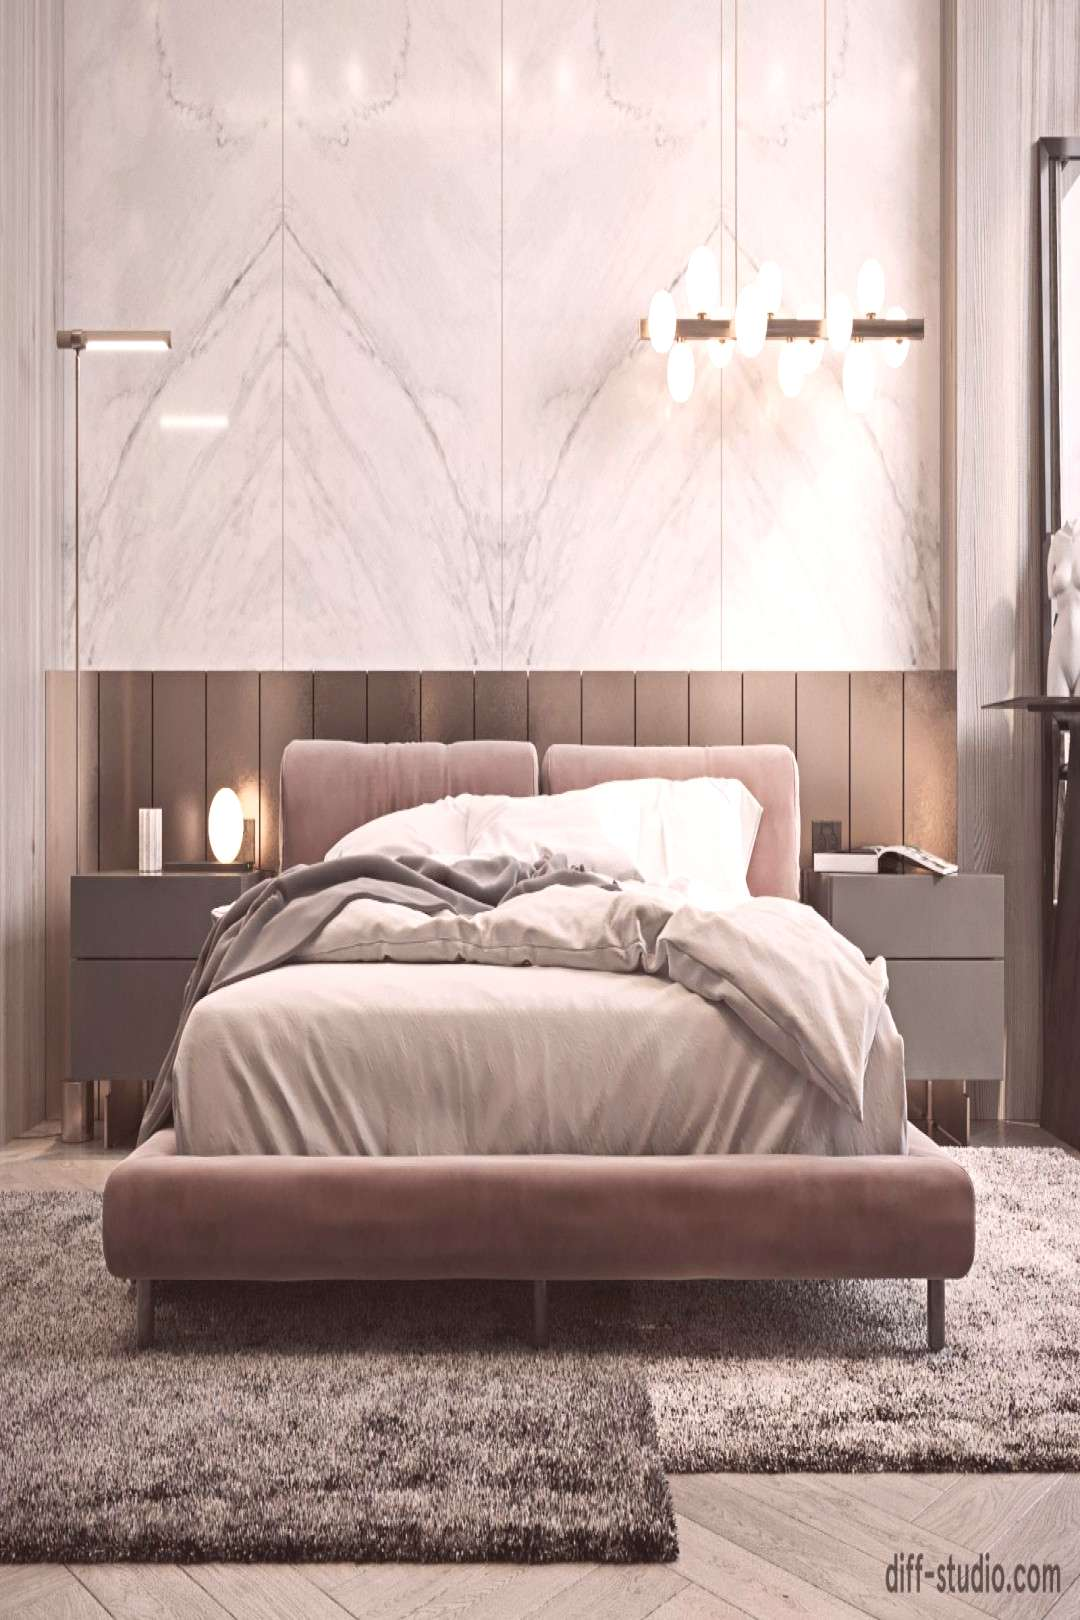 Contemporary house in Paris. Master bedroom. on Behance